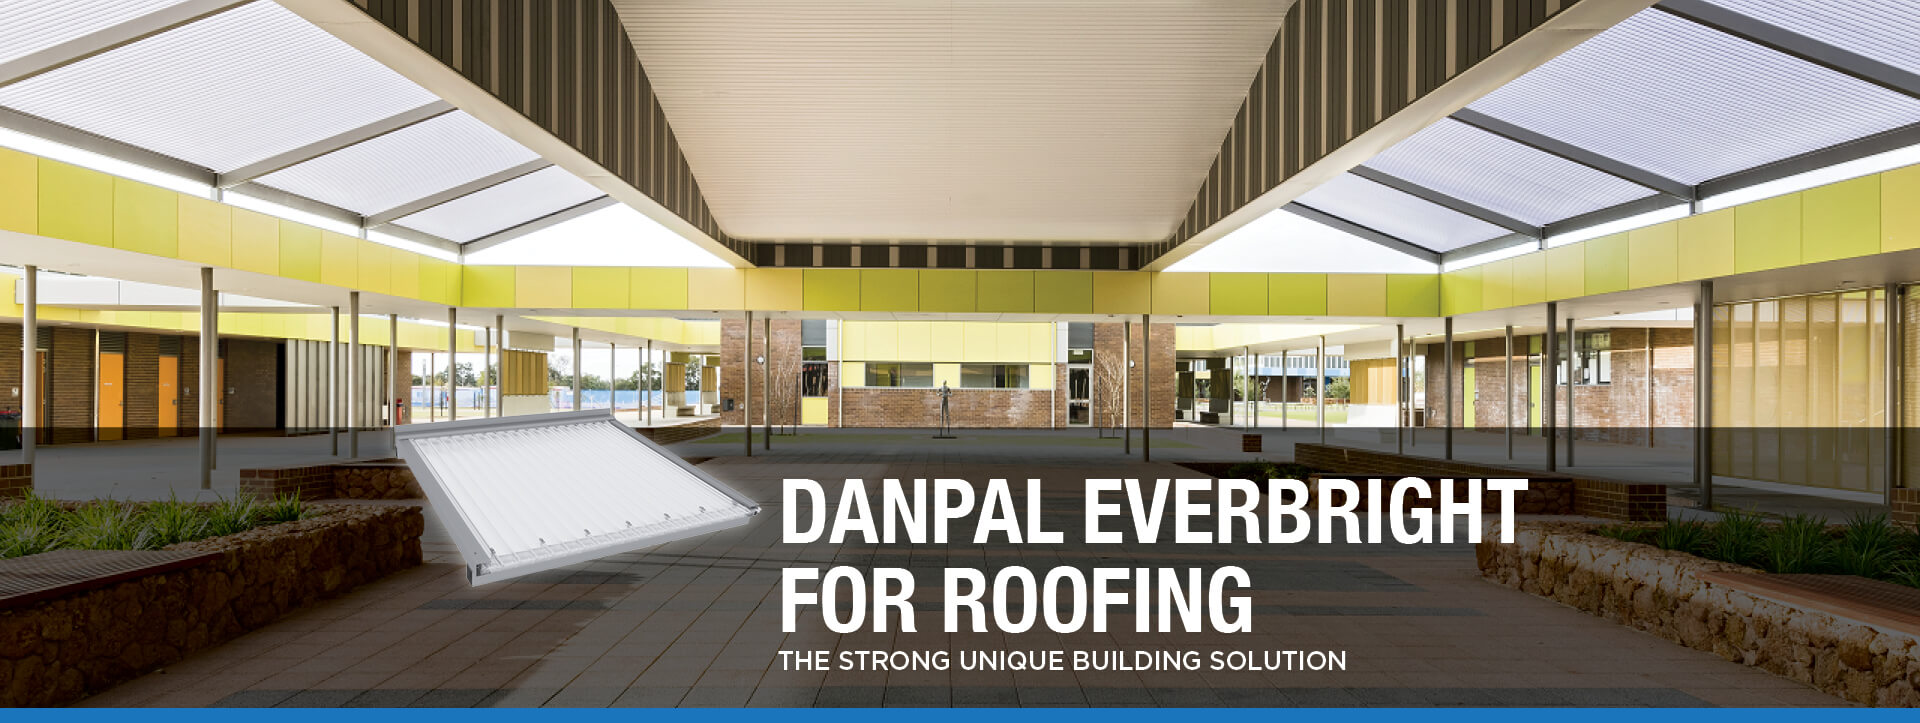 Danpal Everbright for roofing